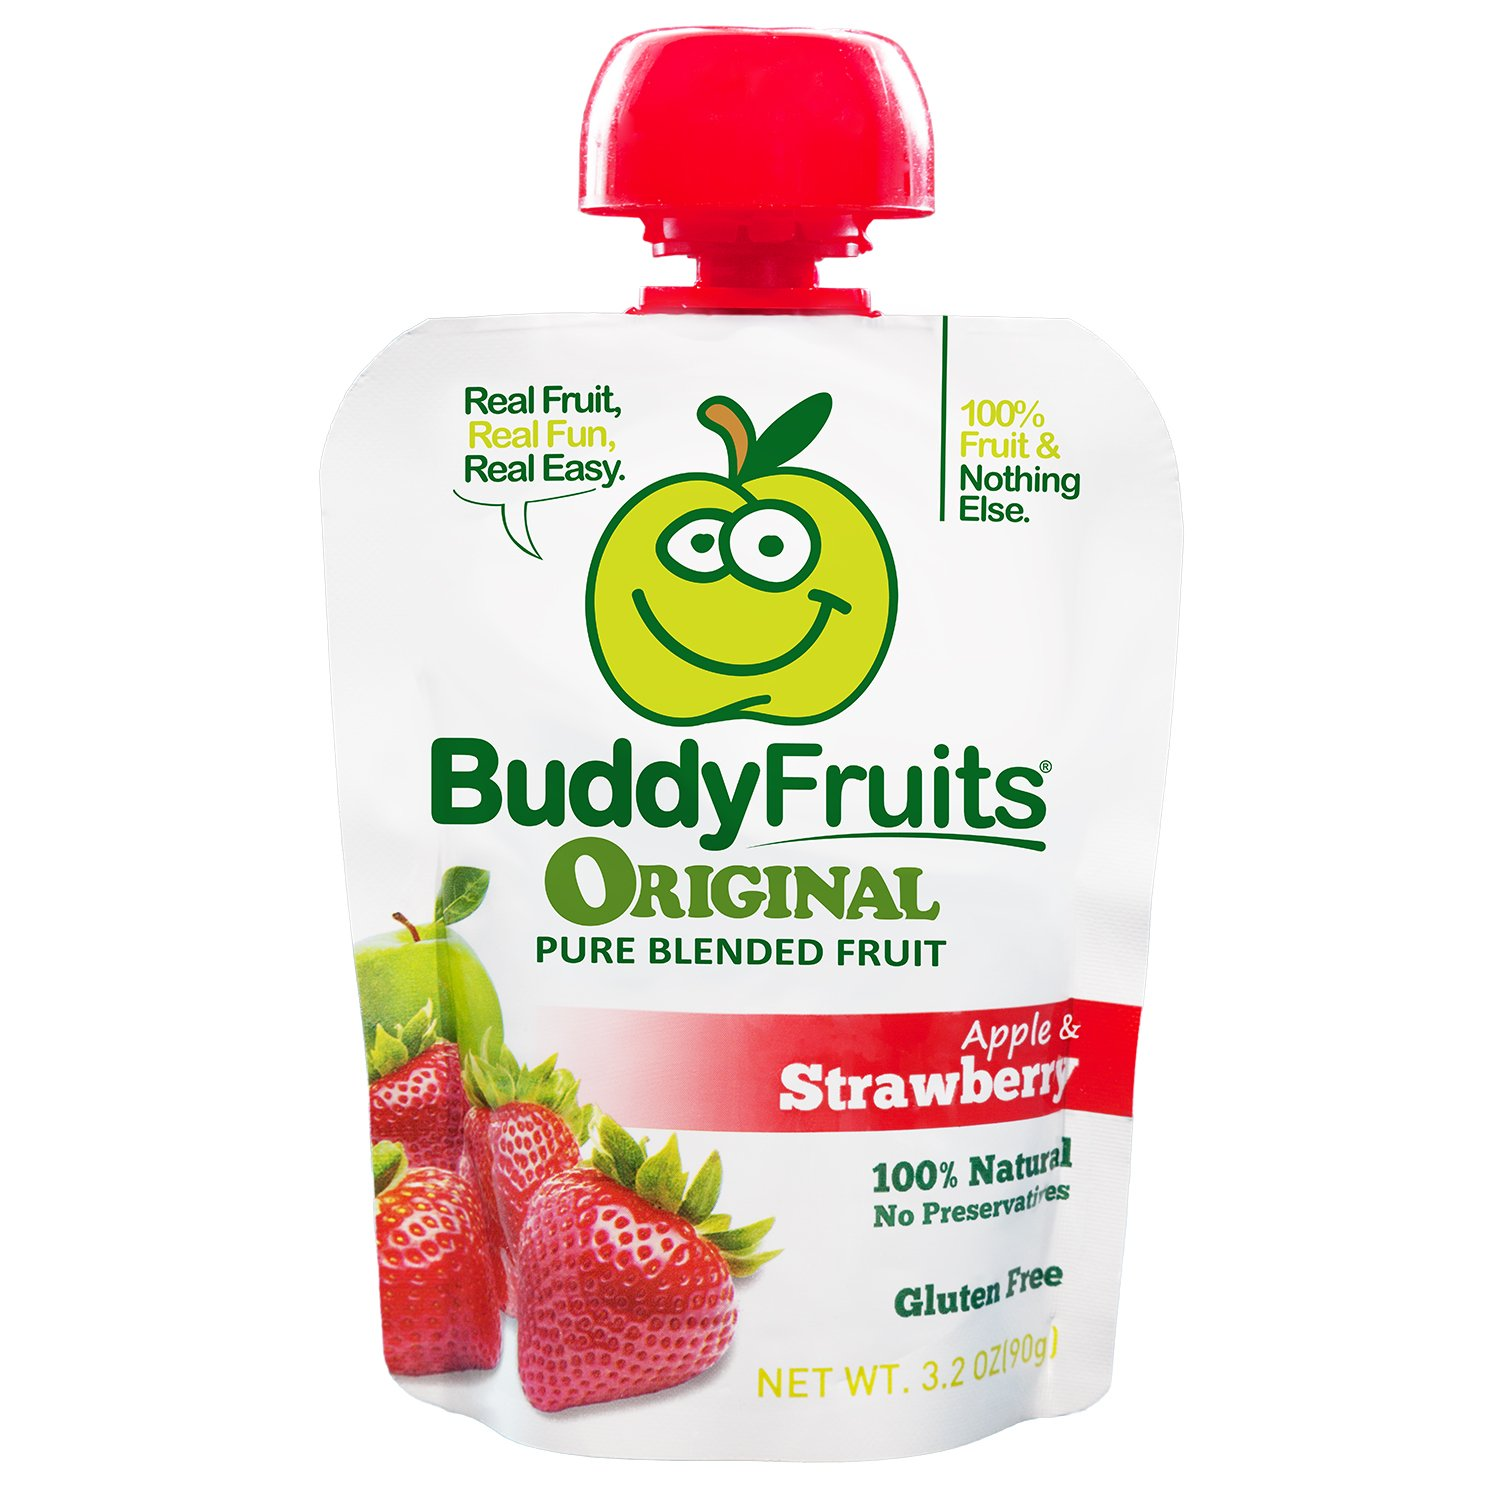 Buddy Fruits Pure Blended Fruit To Go, Strawberry, 3.2-Ounce Packages (Pack of 18)